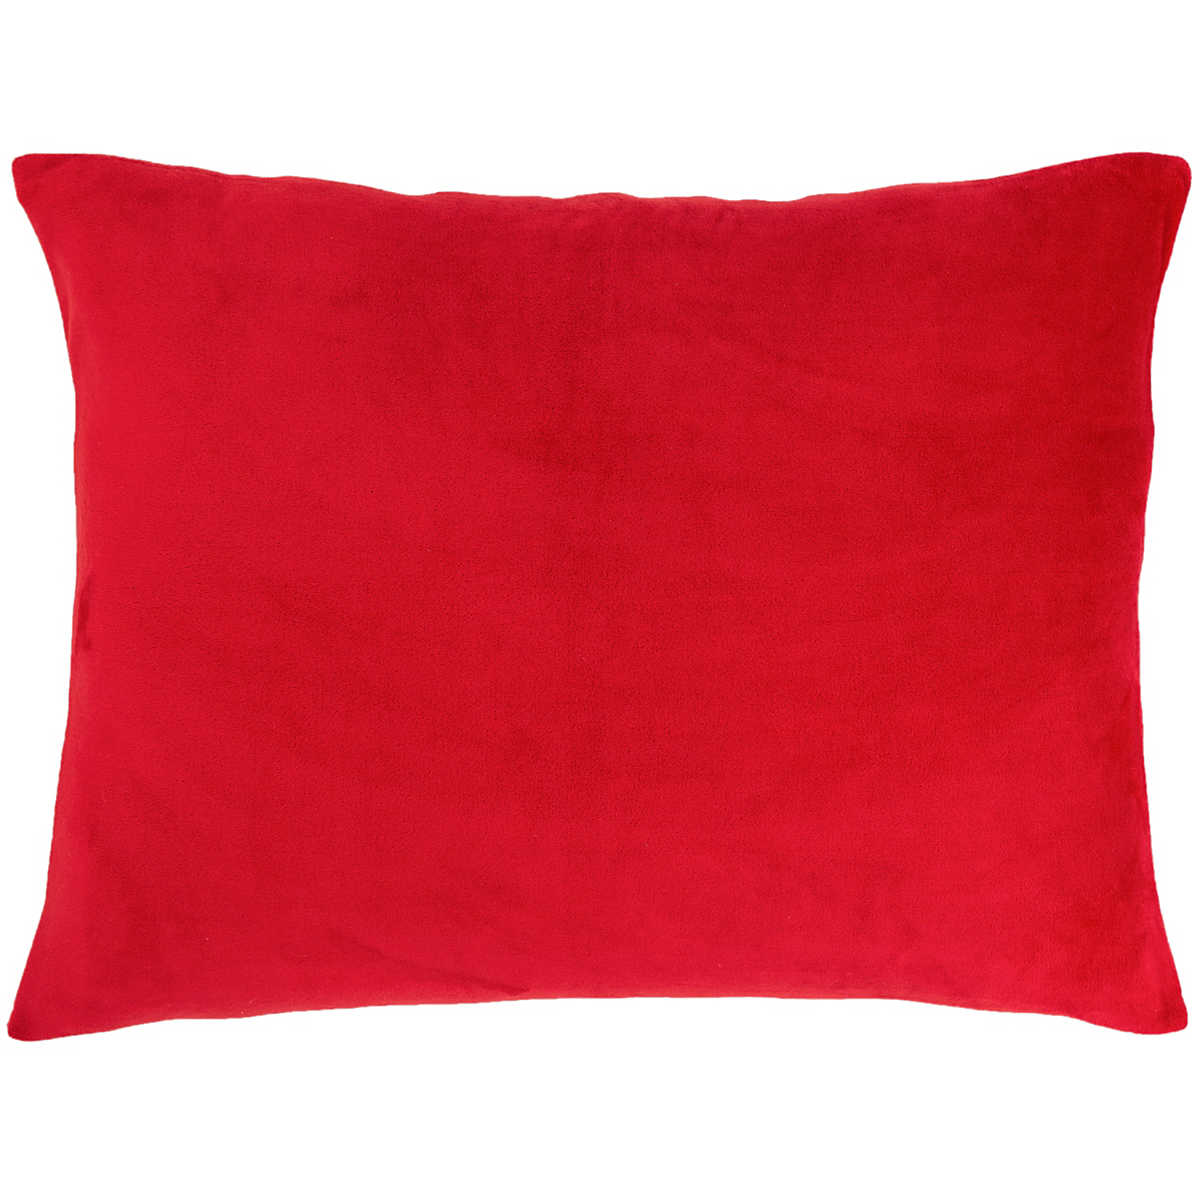 Selke Fleece Red Decorative Pillow The Outlet